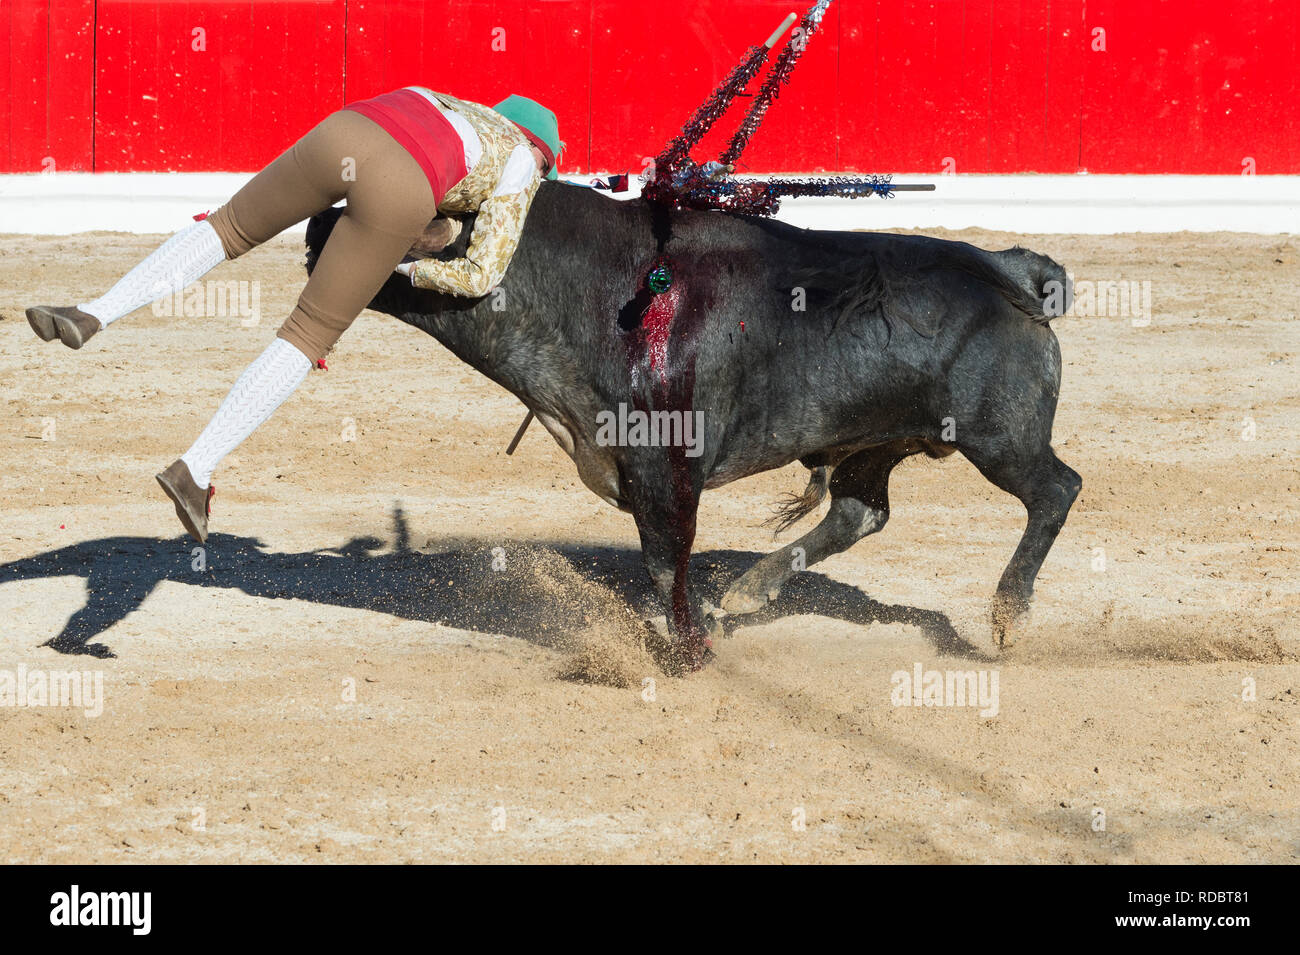 Bullfight in Alcochete. Forcado challenging a bull and trying to stop it, Bulls are not killed during the bullfight, Alcochete, Setubal Province, Port - Stock Image